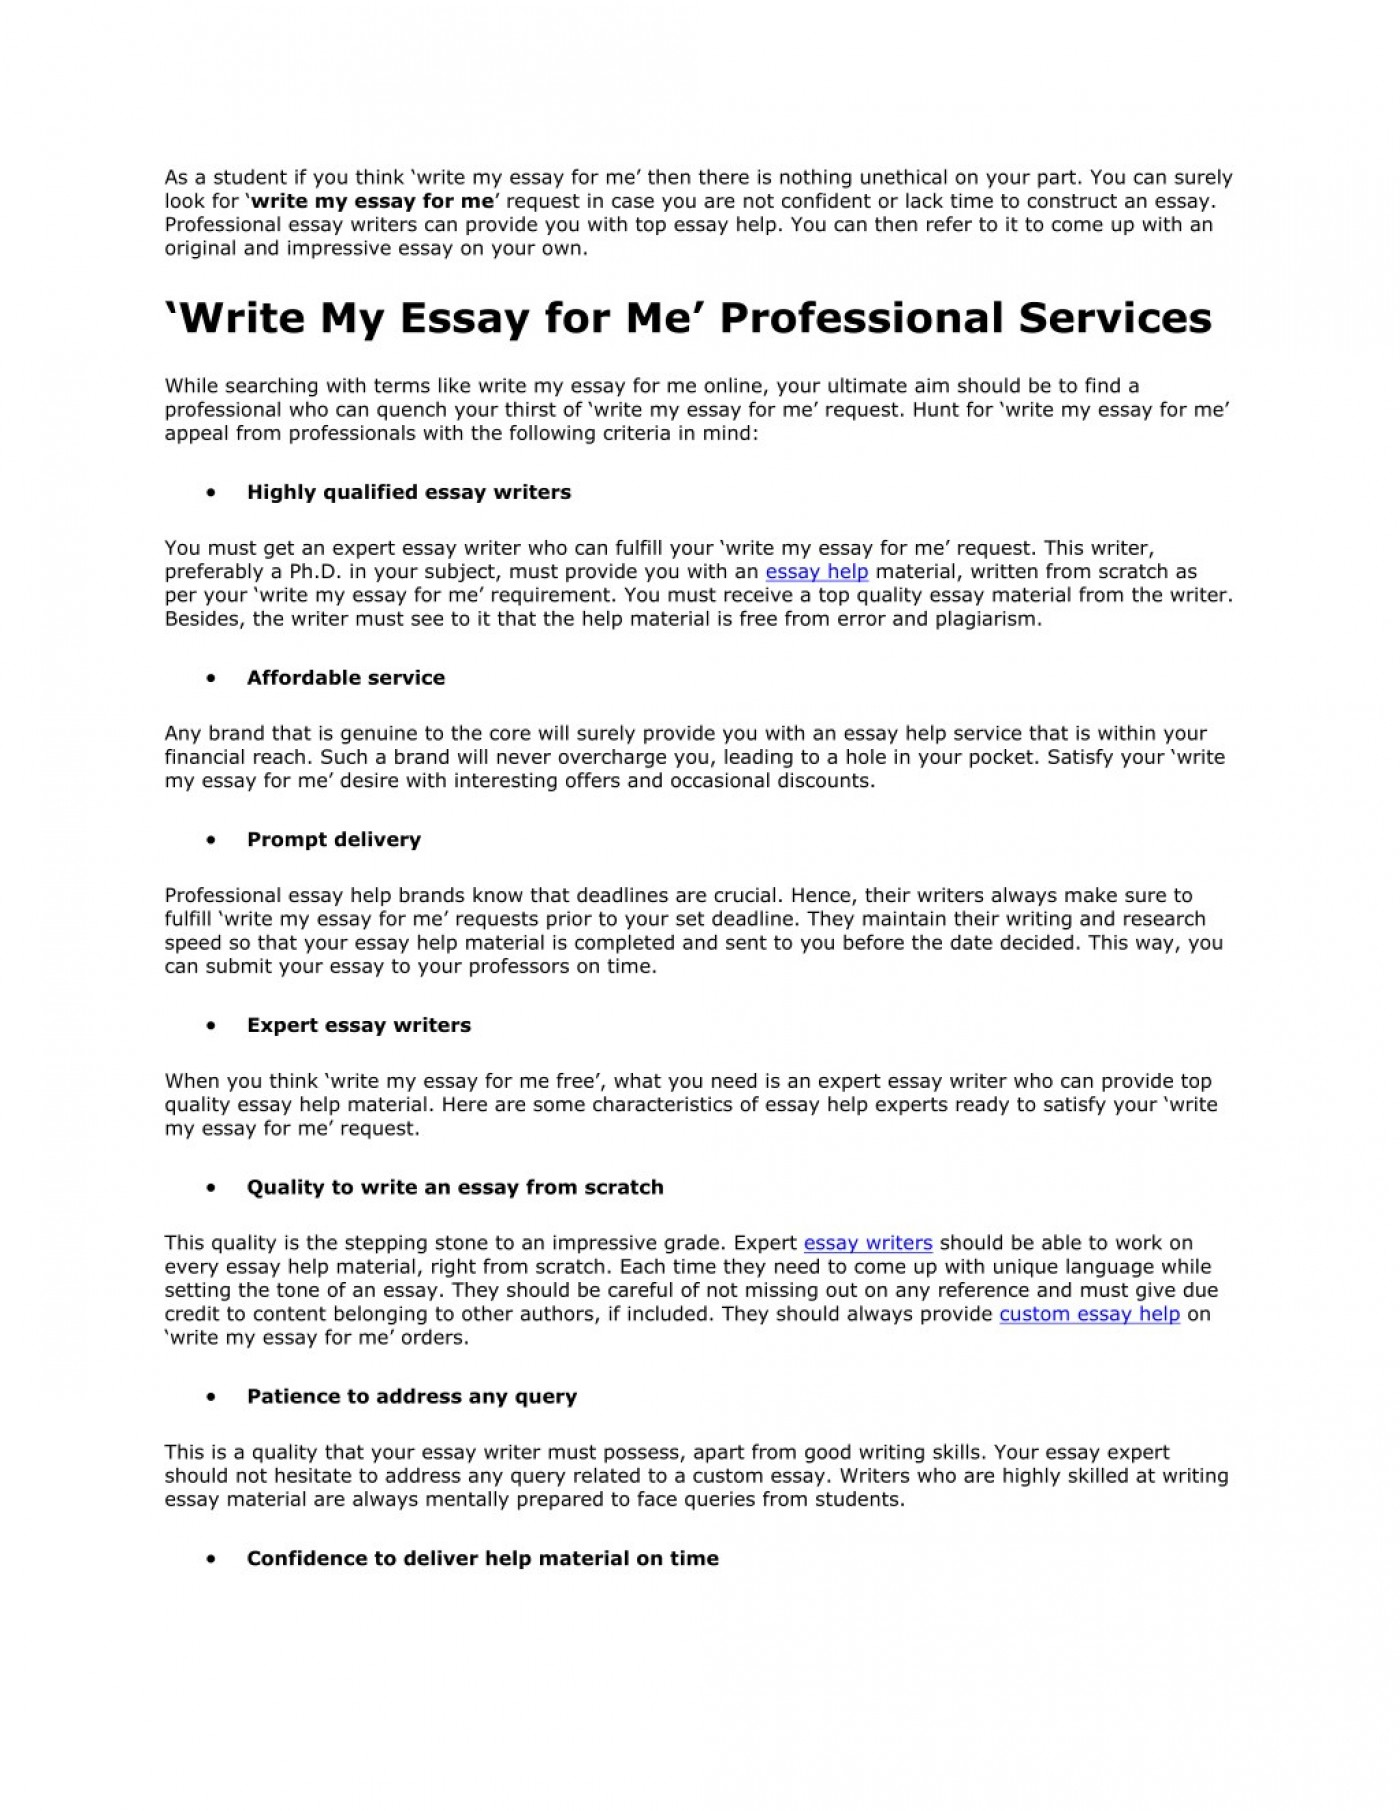 006 Essay Example Write For Me As Student If You Think My Amazing Custom Cheap Online Free 1400